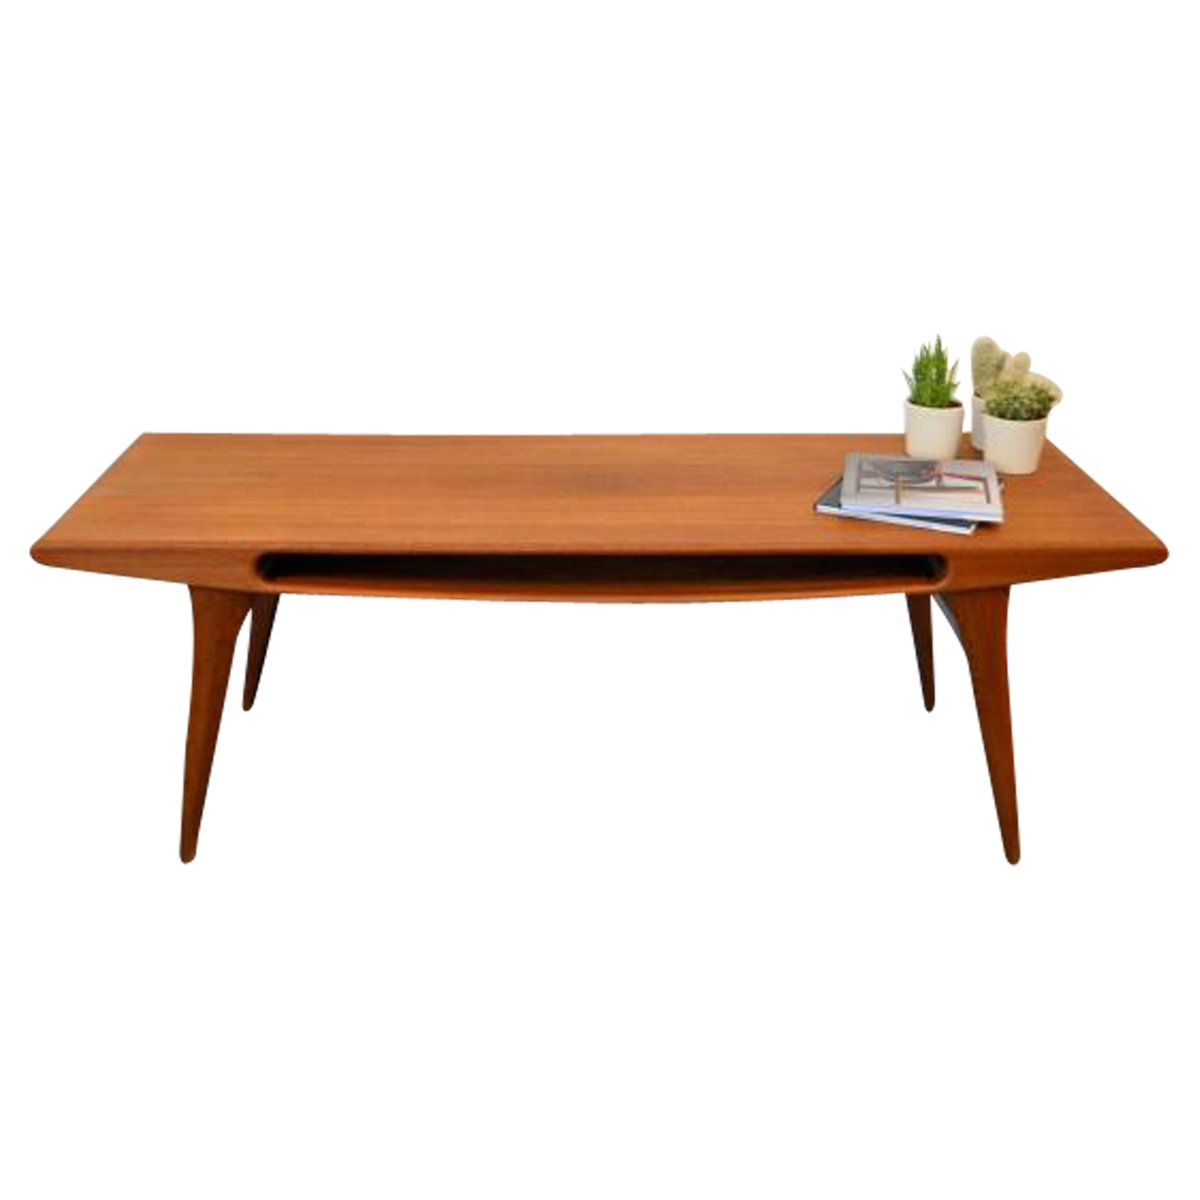 Vintage Teak Coffee Tables: Vintage Danish Teak Coffee Table With Smile Opening For